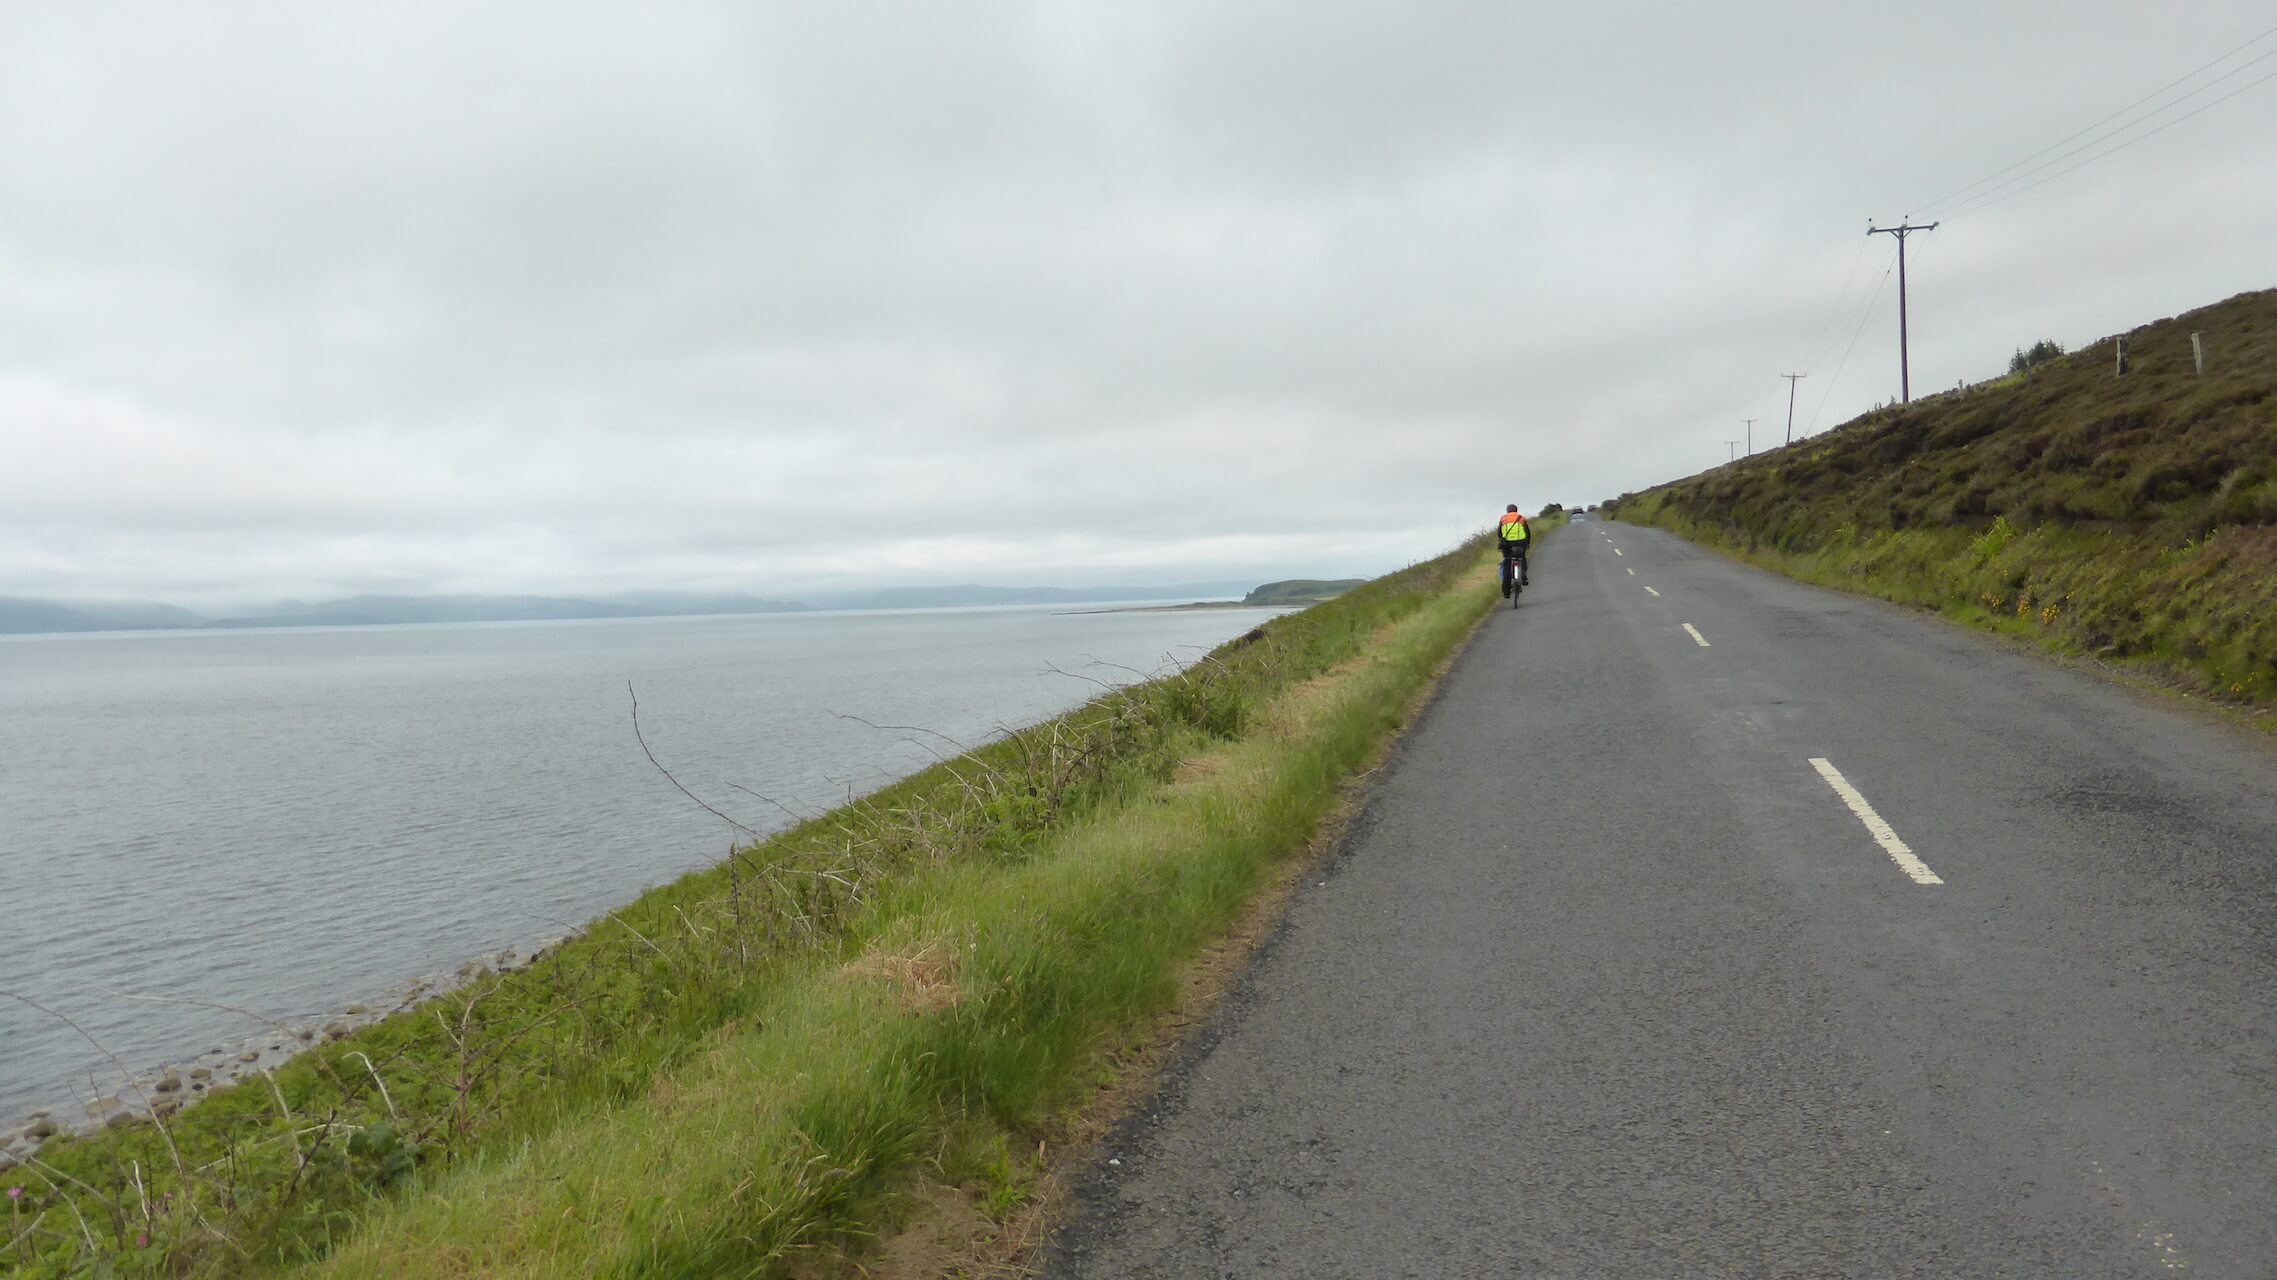 A841 below Blackwaterfoot, Isle of Arran